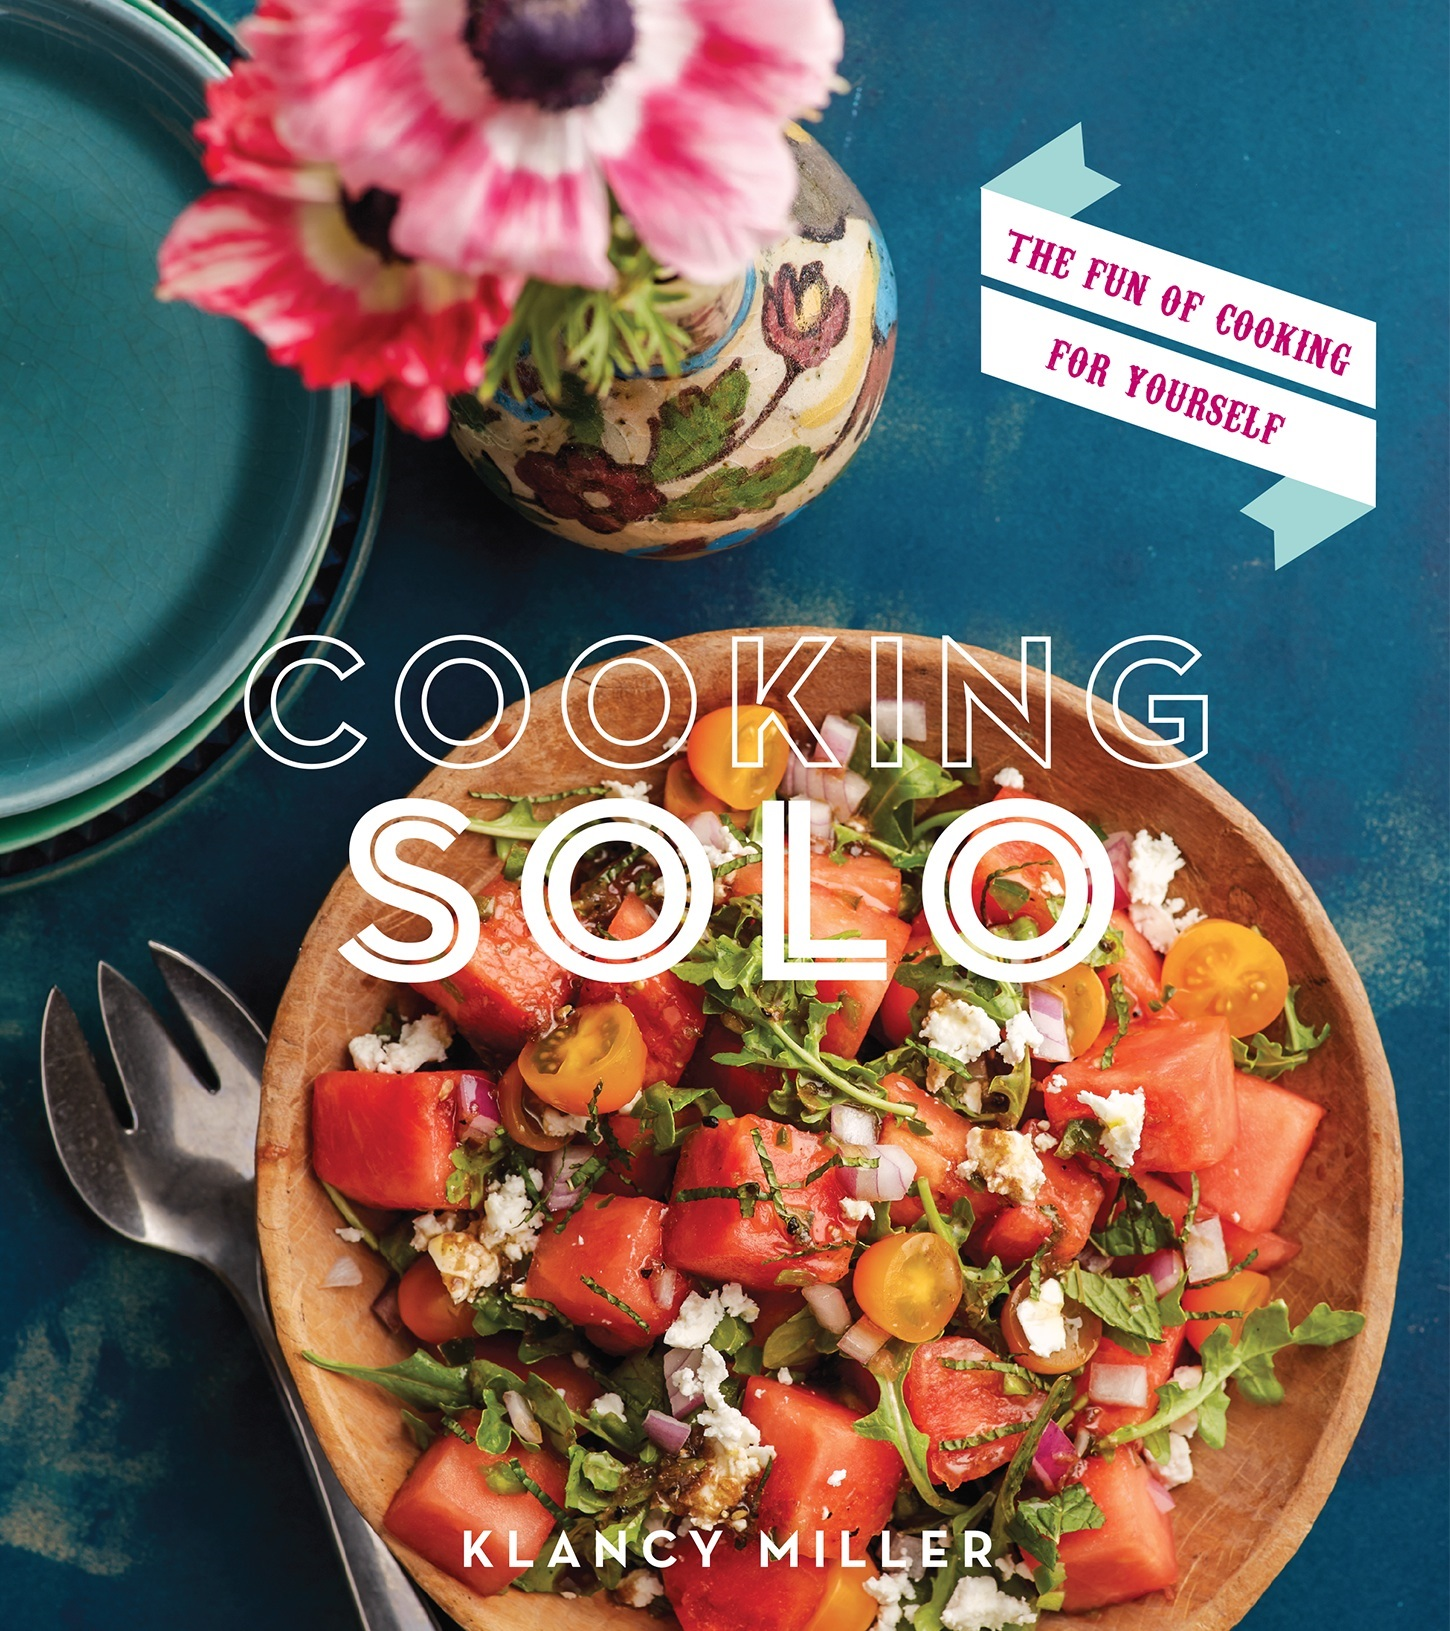 'Cooking Solo:' Find The Fun of Cooking for Yourself